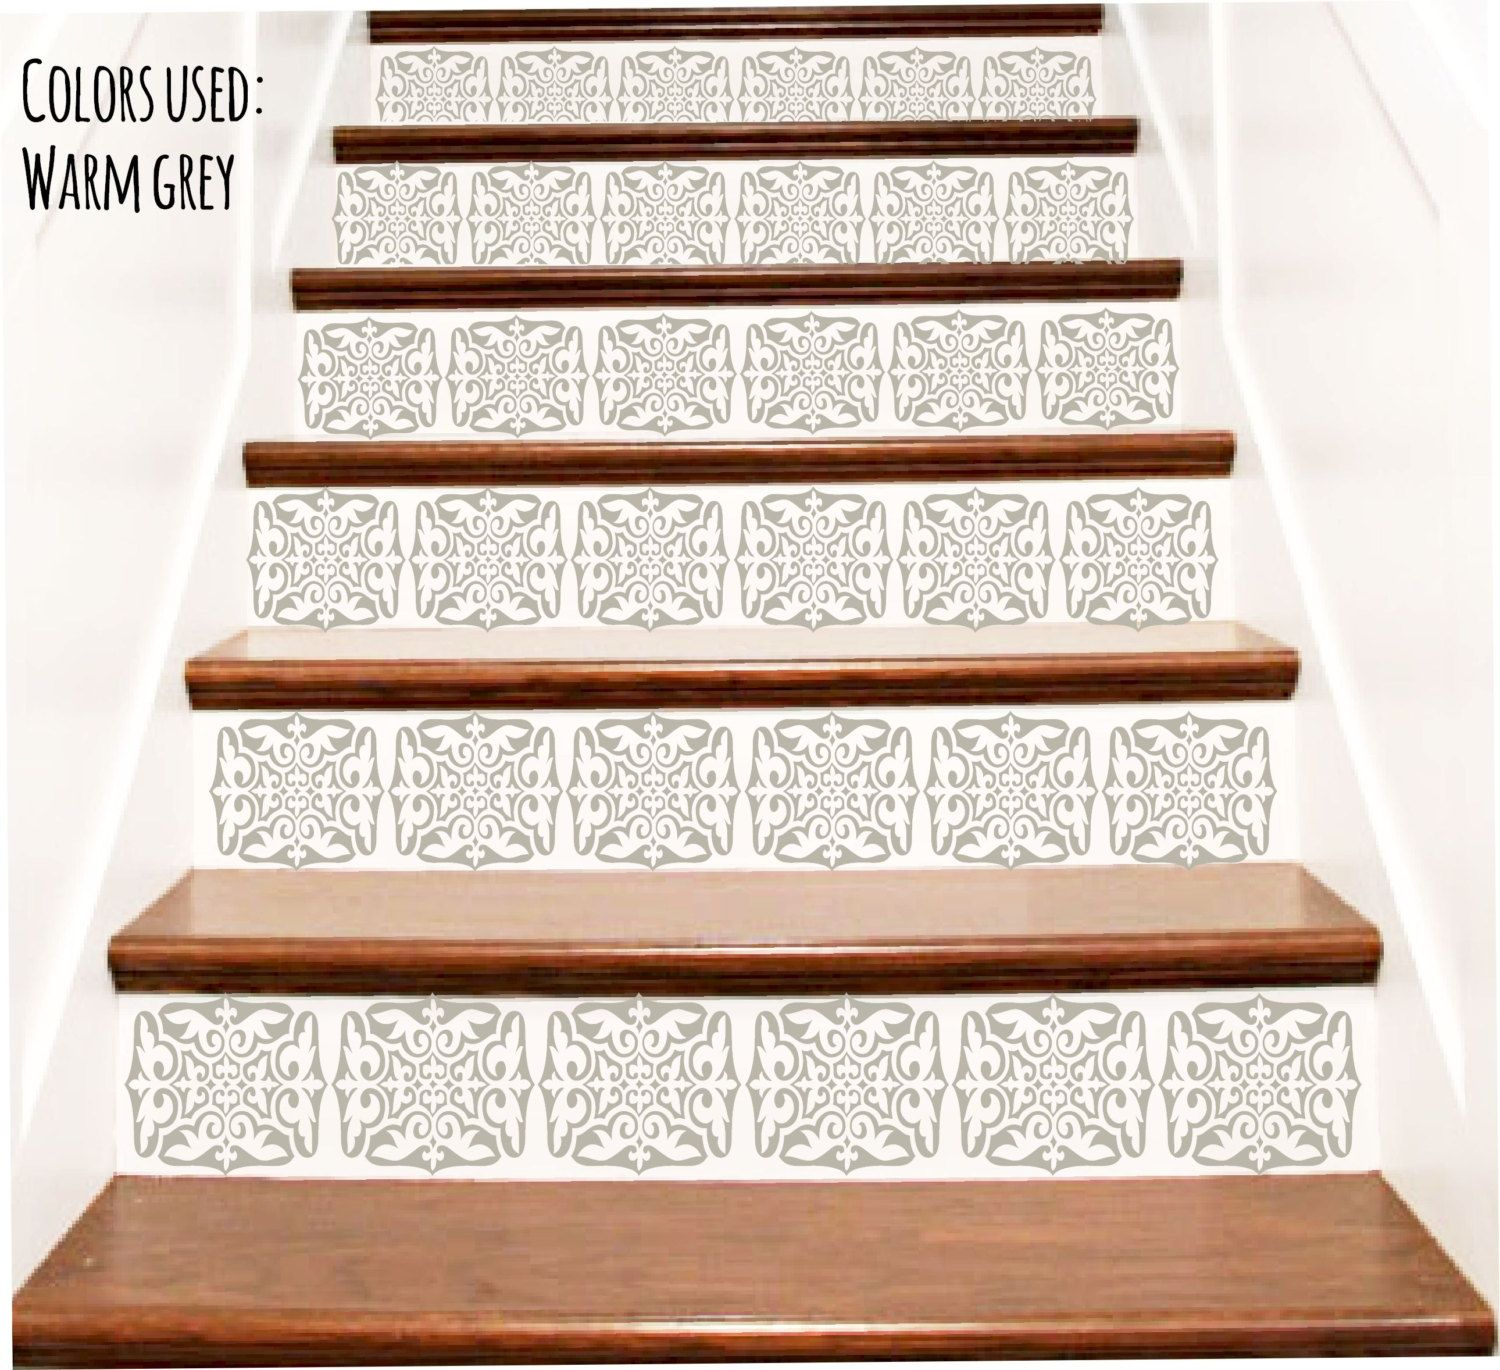 Stair Stickers Victorian Vinyl Tile Decals For Stair Risers Stairway Staircase Escalier Wall Decor Decoration By Cro Stair Stickers Vinyl Tile Stairs Vinyl